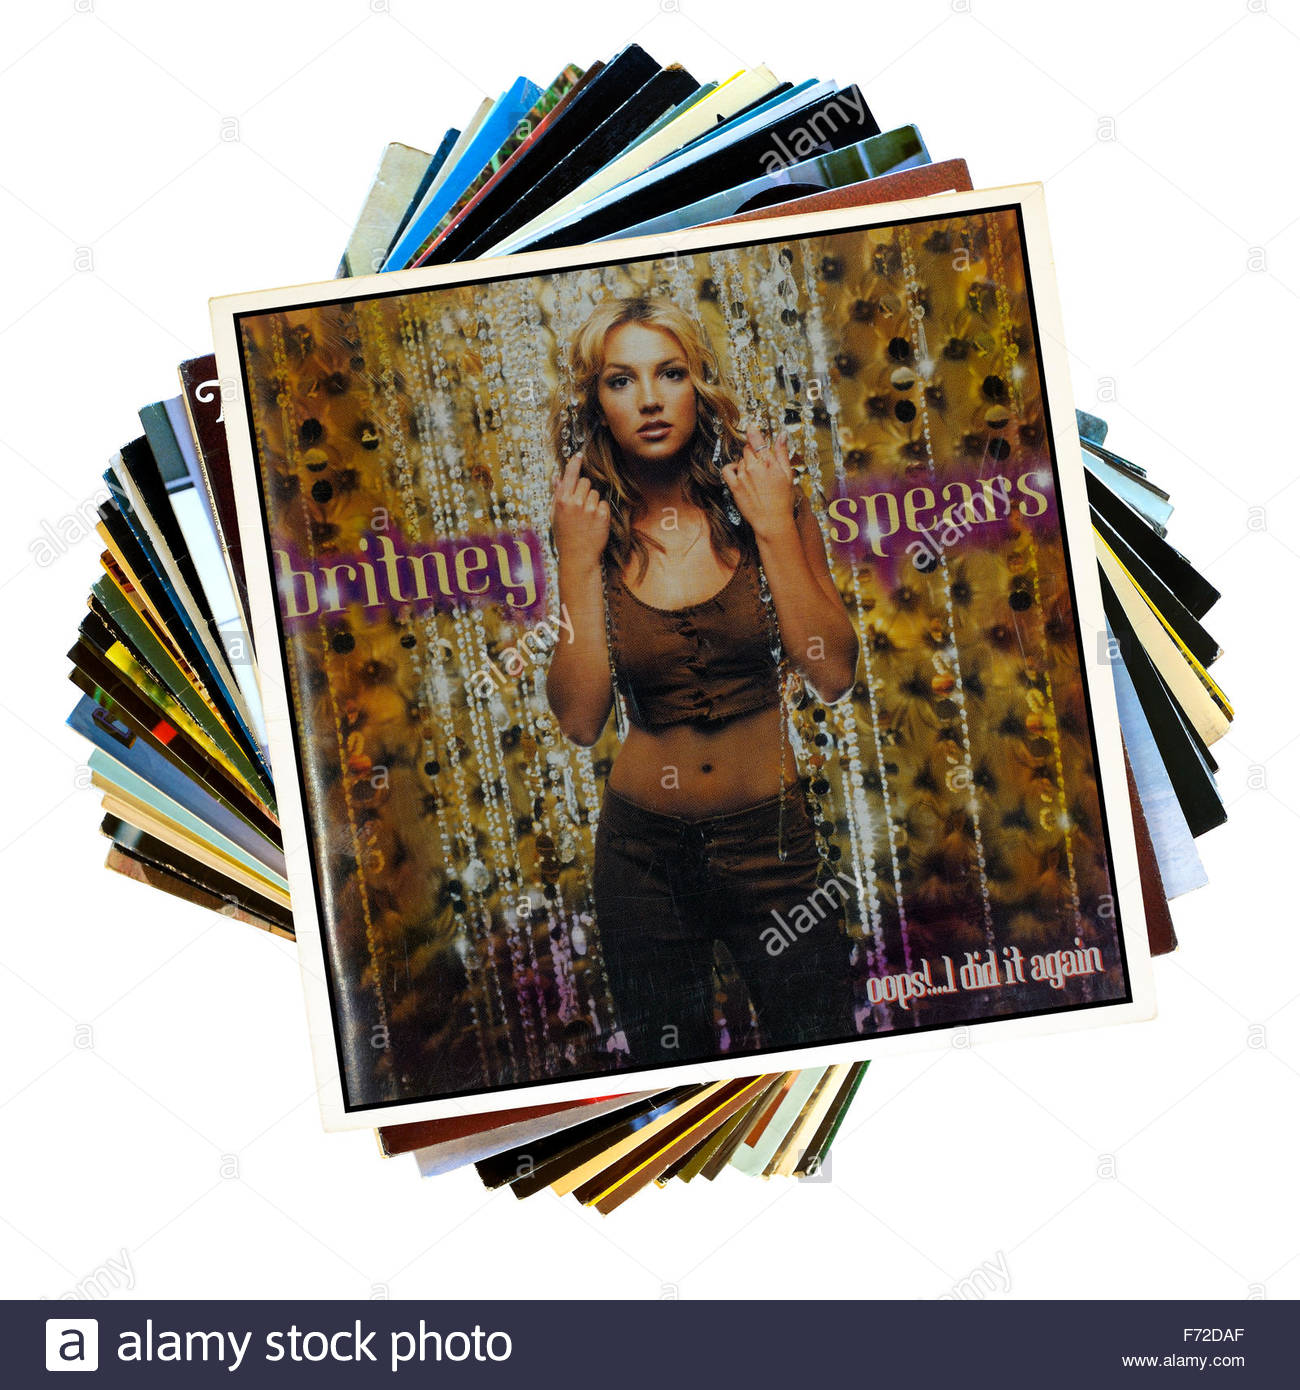 Britney Spears 2000 Album Oops I Did It Again Stack Of Lp Records Stock Photo Alamy